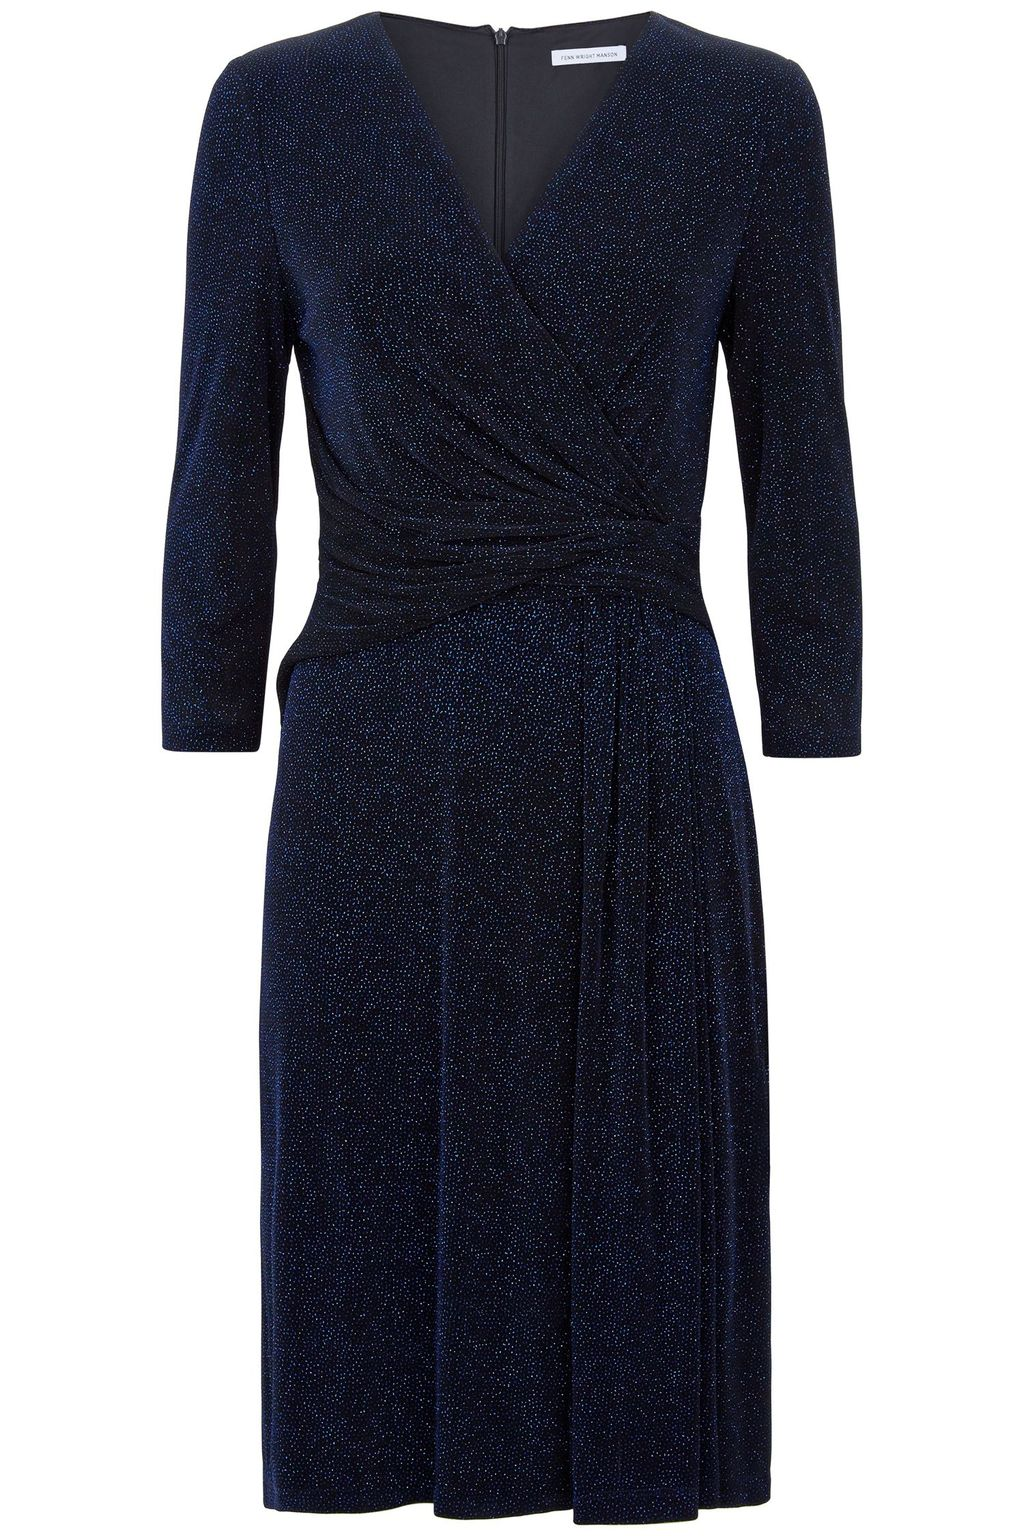 Zena Dress, Blue - style: faux wrap/wrap; neckline: v-neck; pattern: plain; predominant colour: navy; occasions: evening; length: on the knee; fit: body skimming; fibres: polyester/polyamide - stretch; sleeve length: 3/4 length; sleeve style: standard; pattern type: fabric; texture group: jersey - stretchy/drapey; season: a/w 2015; wardrobe: event